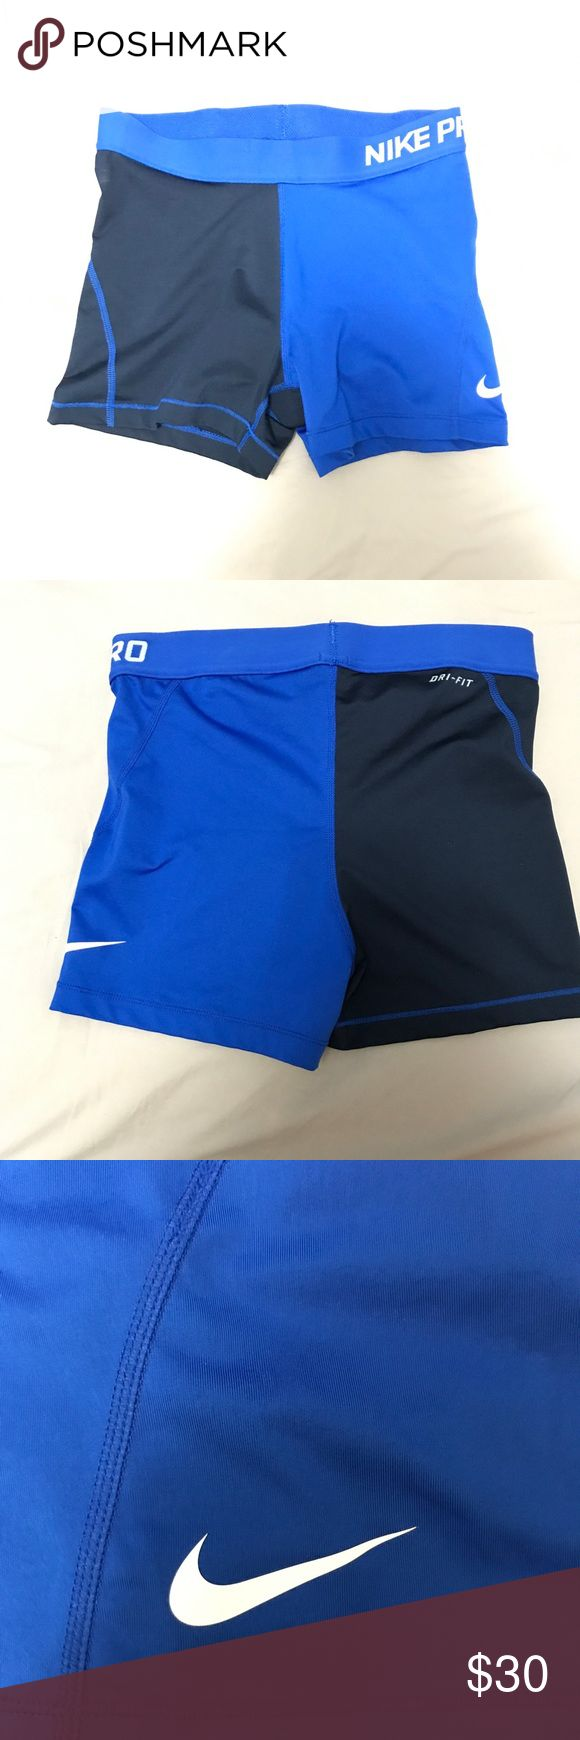 """Nike Pro Women's 3"""" Training Shorts Nike Pro with dri-fit technology training shorts.  Half navy, half royal blue.   Worn once or twice, in perfect like-new condition! Nike Shorts"""